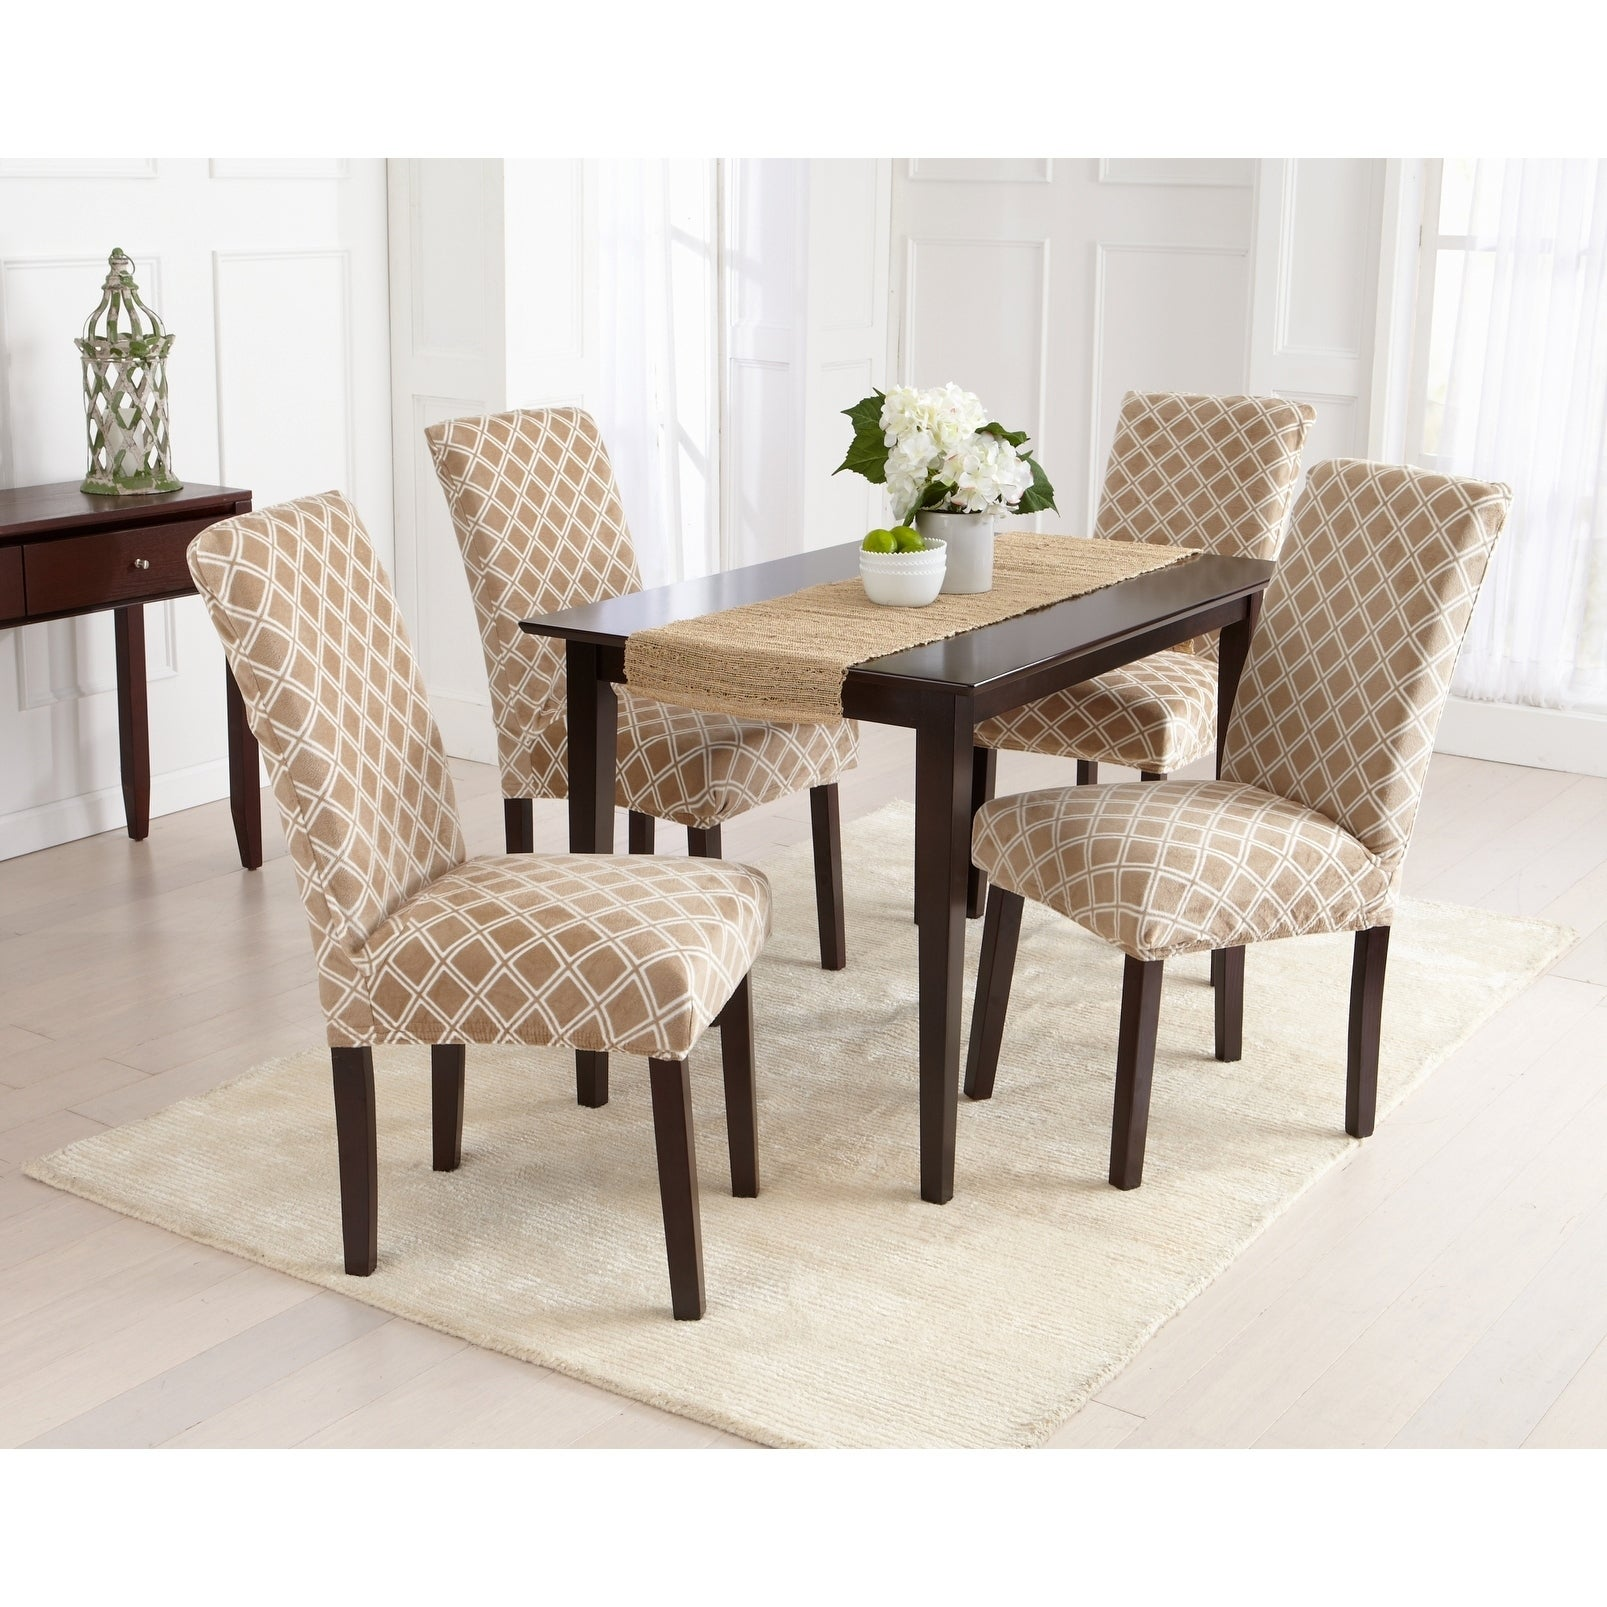 Shop Great Bay Home 4 Pack Velvet Plush Printed Dining Room Chair Cover